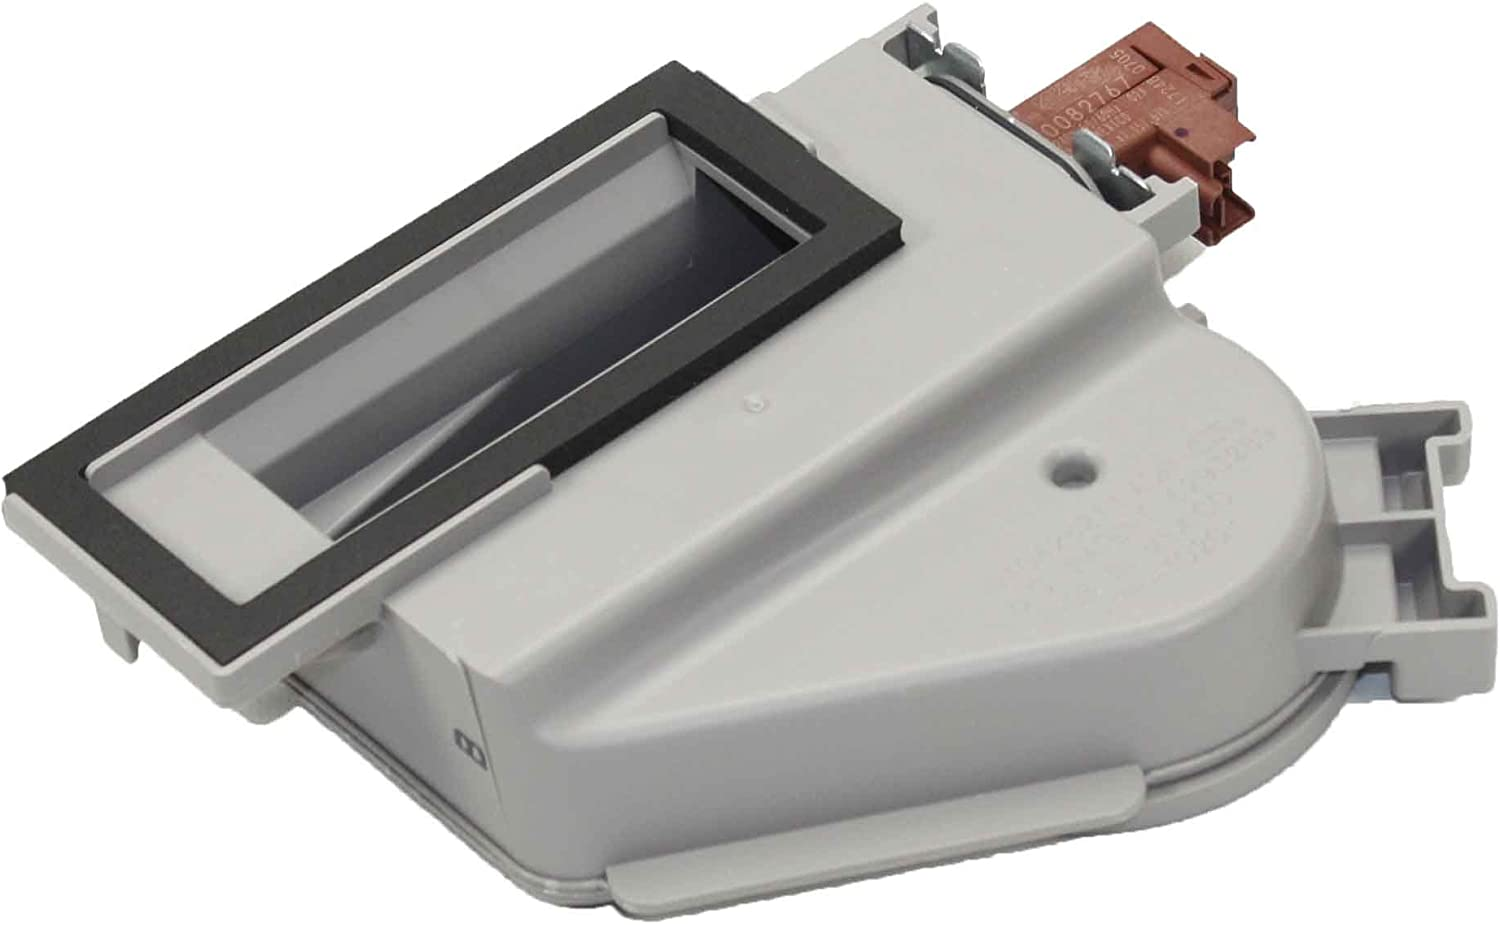 ForeverPRO W10428211 Vent for Whirlpool Dishwasher W10428211 PS11754644 W10274928 W10329927